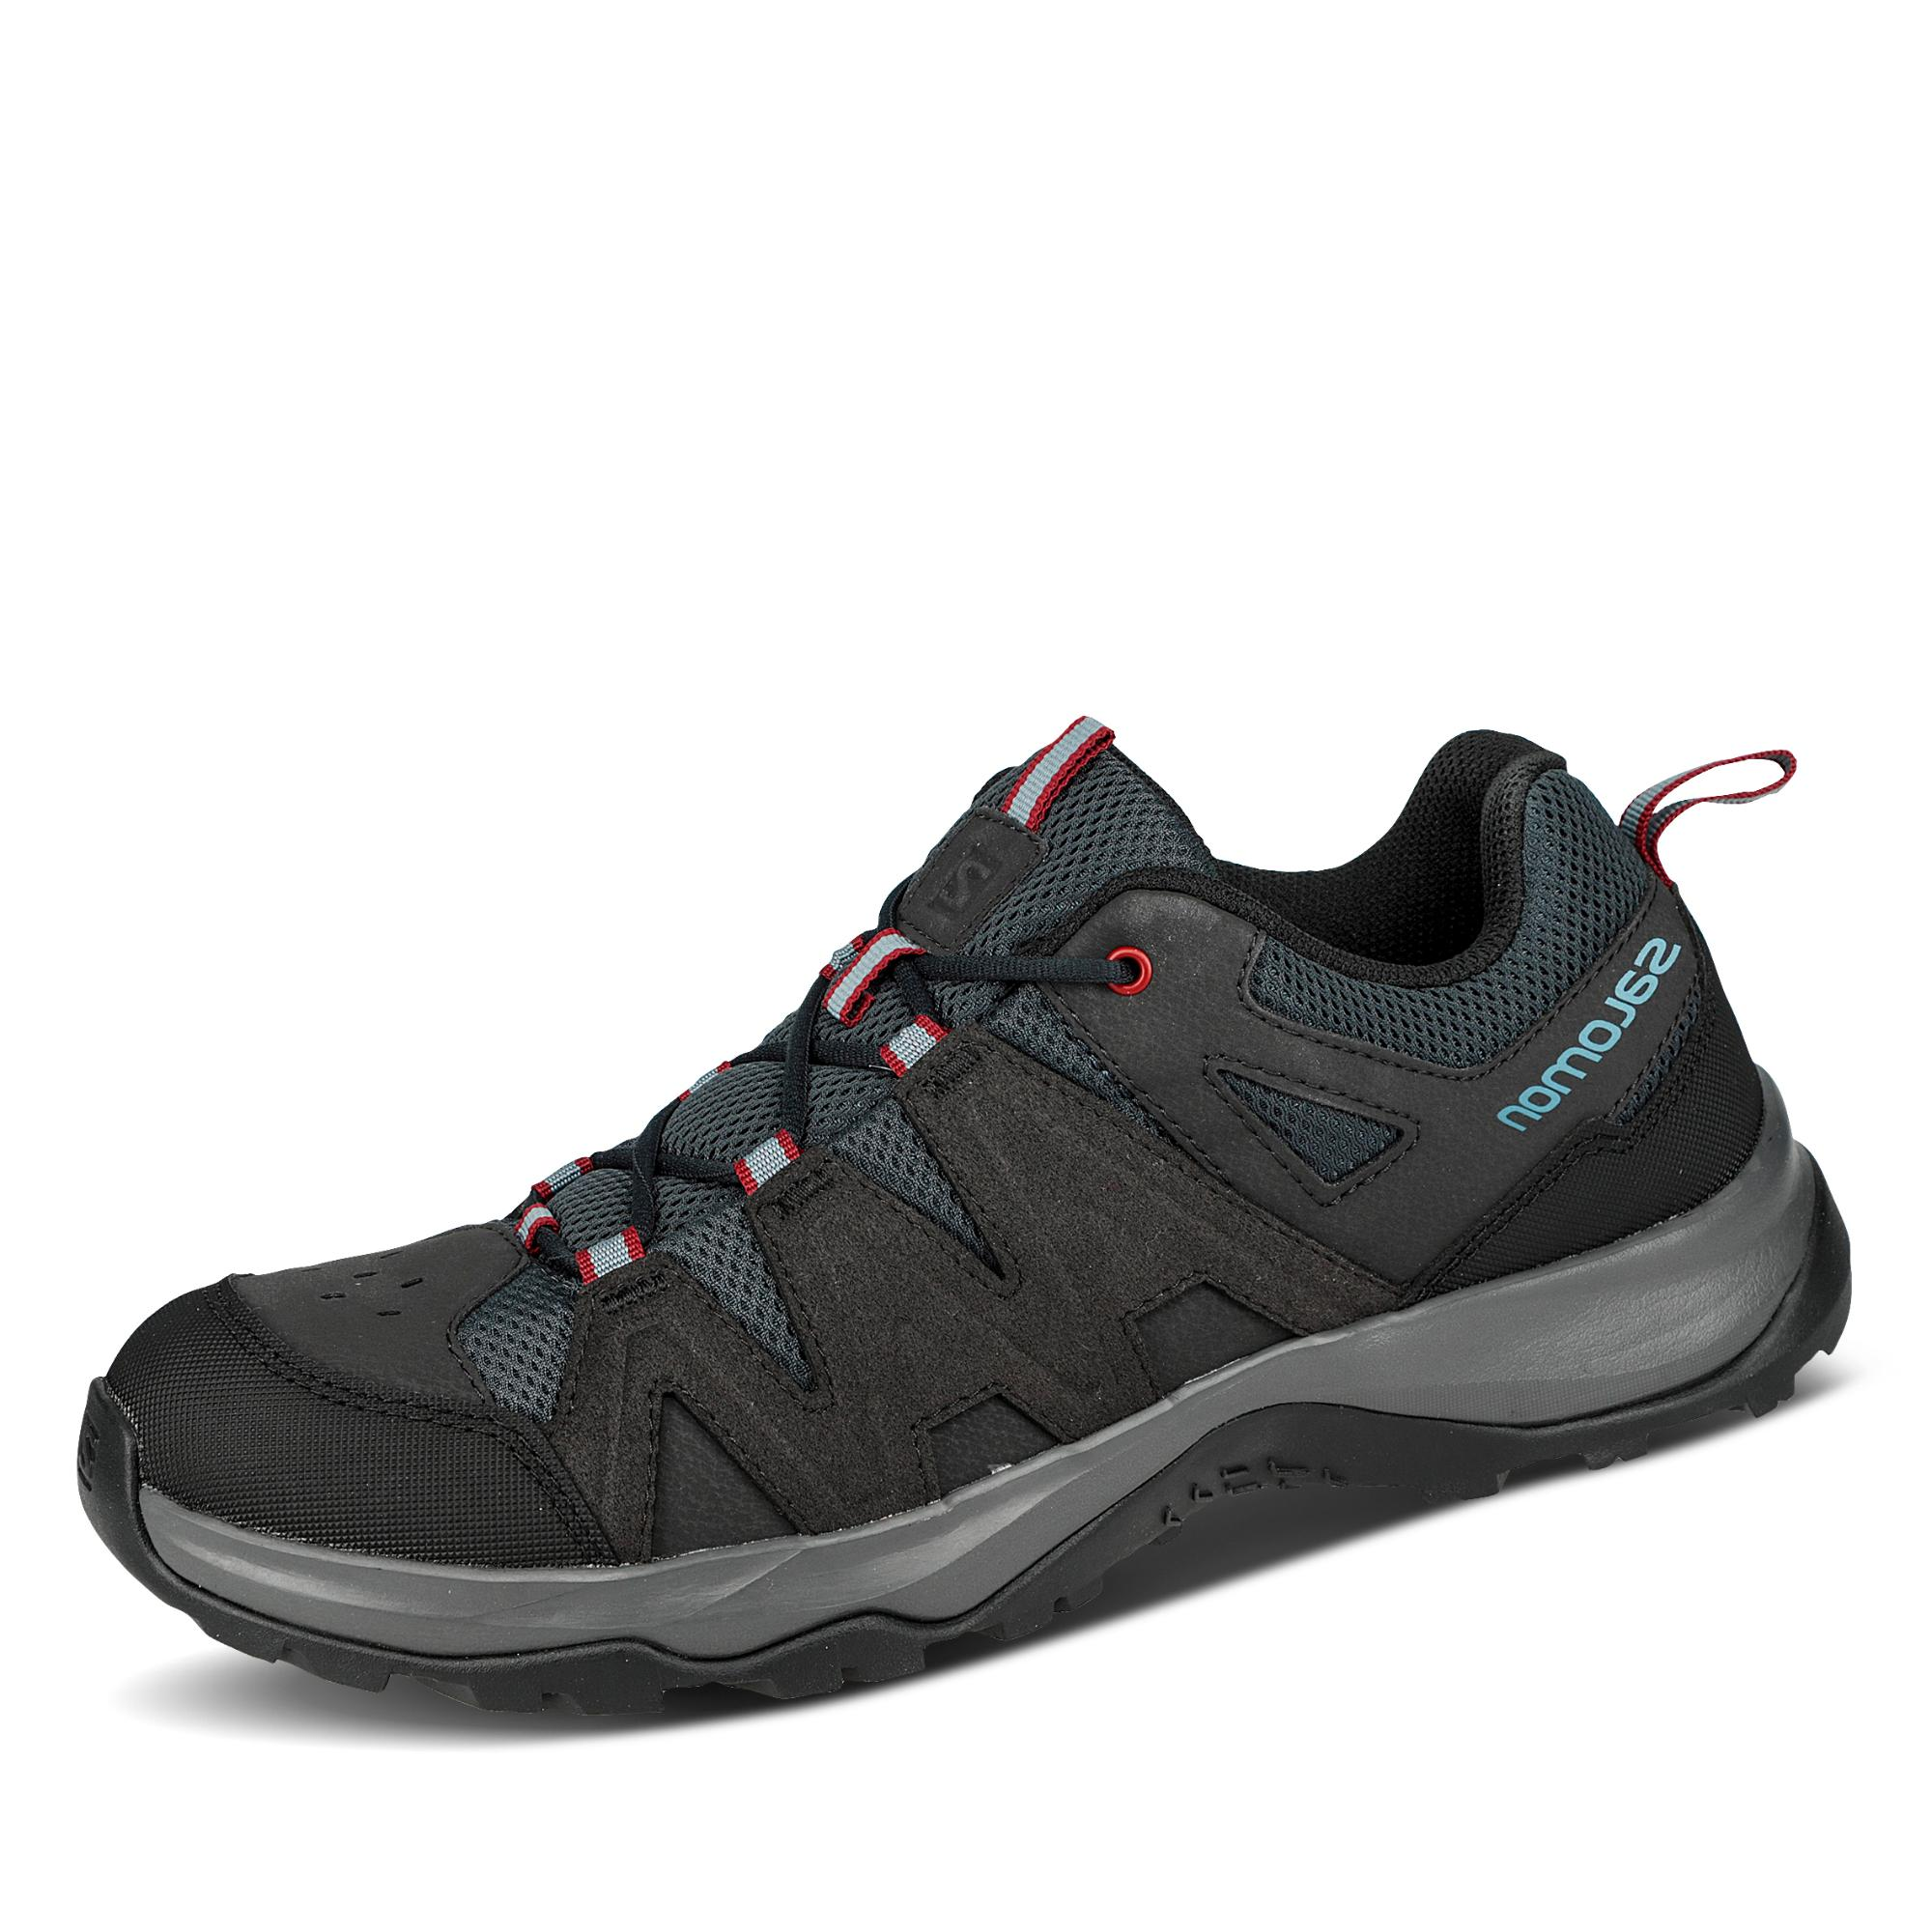 Salomon Millstream 2 Outdoorschuh blauanthrazit um 29